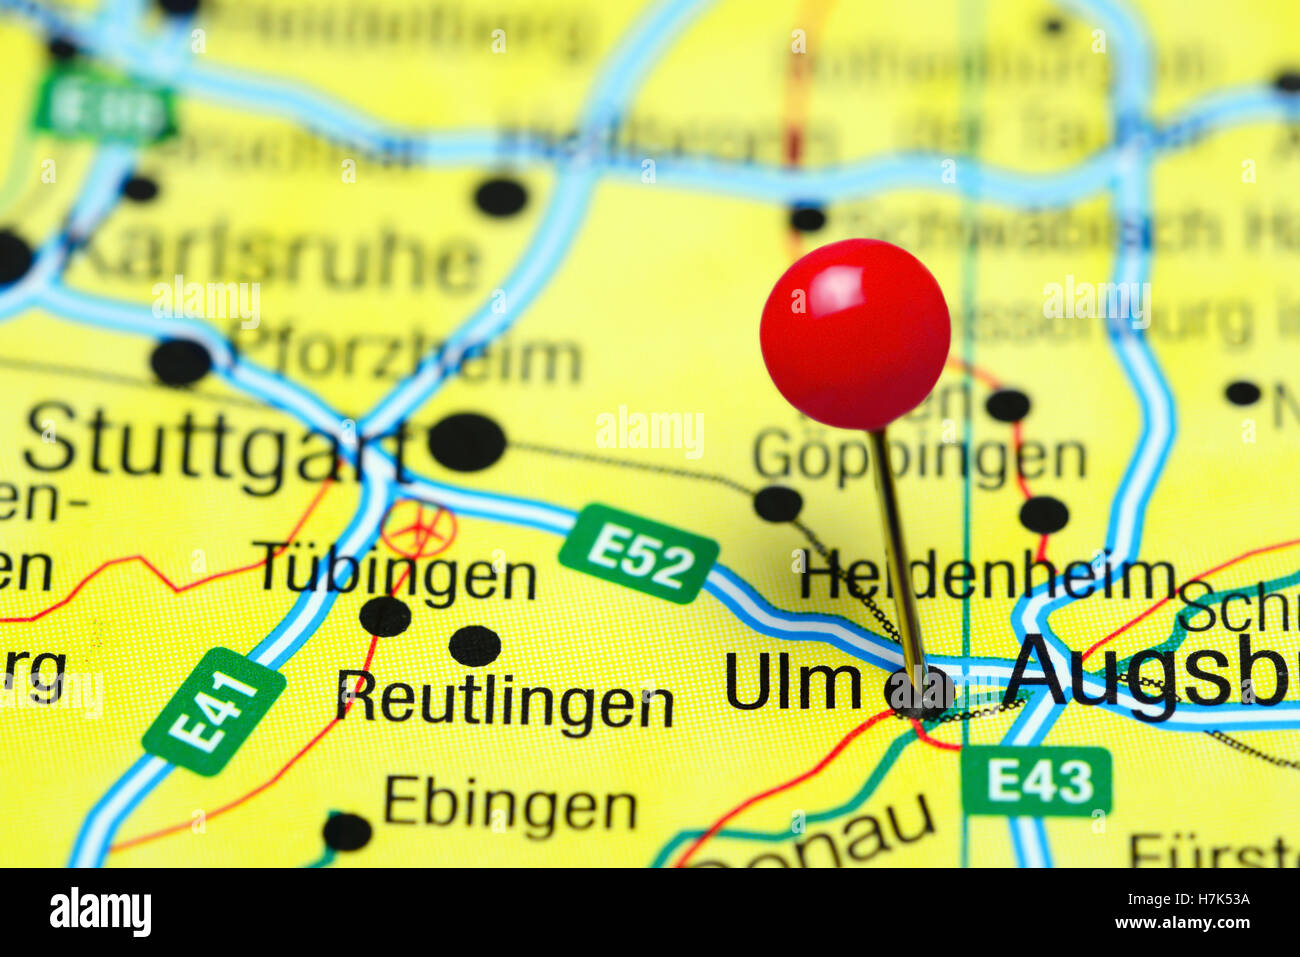 Map Of Germany Ulm.Ulm Pinned On A Map Of Germany Stock Photo 125196270 Alamy